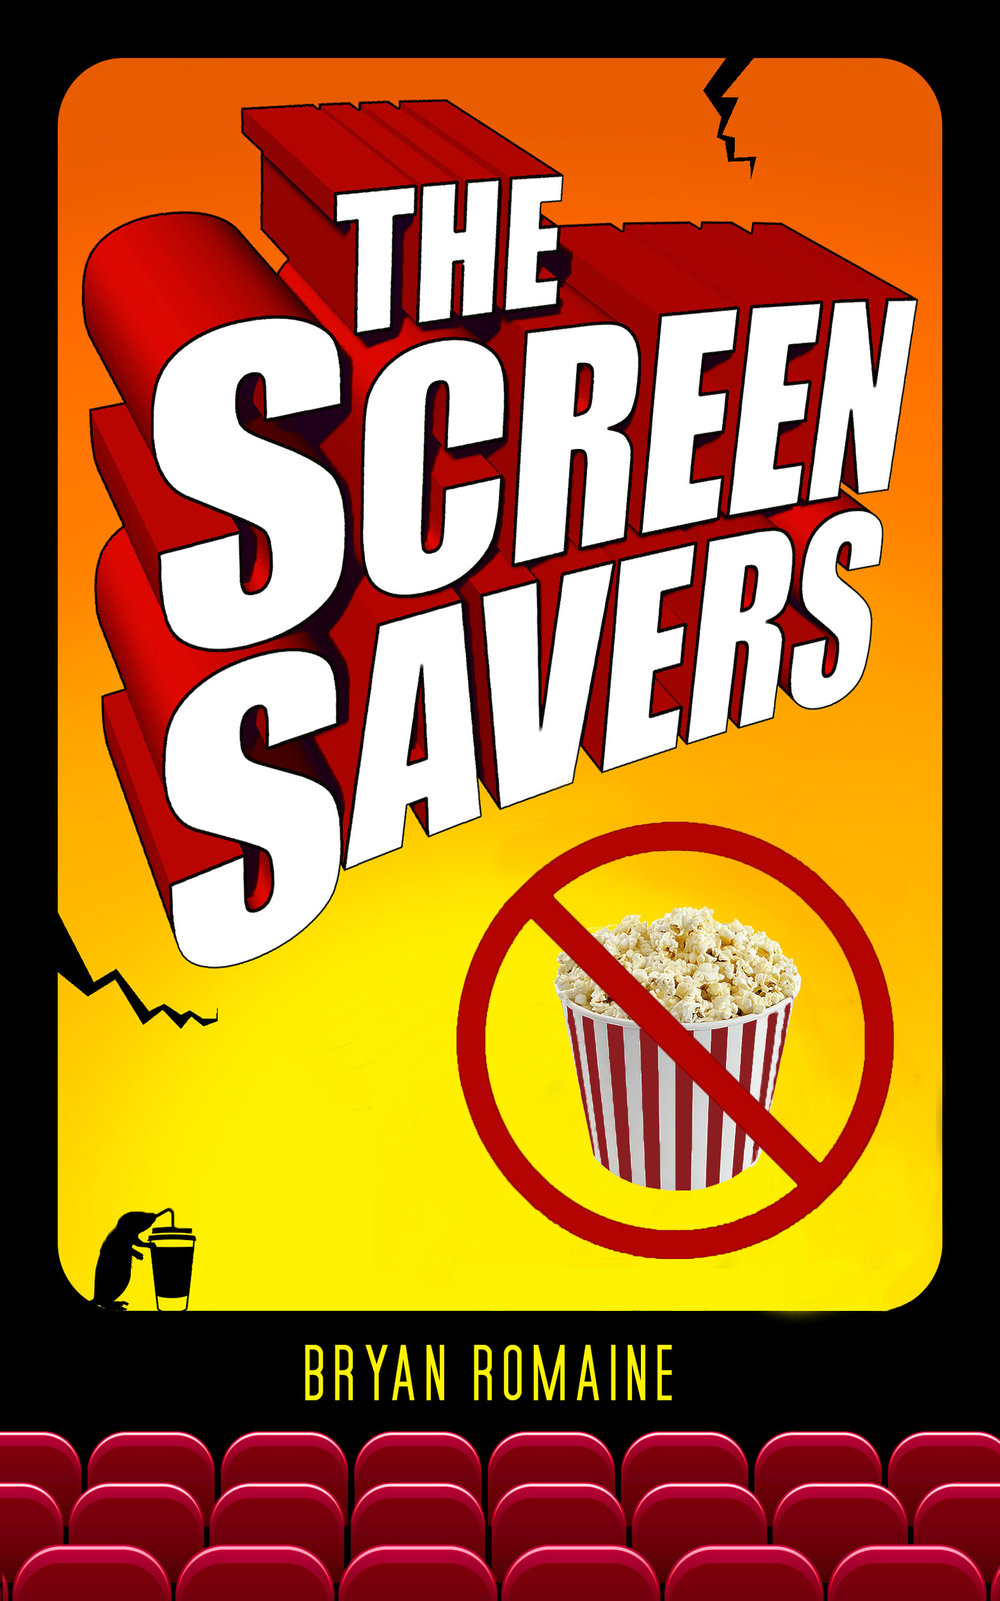 Original-Screen-Savers-No-Popcorn-Final-no-coffee-sfw.jpg